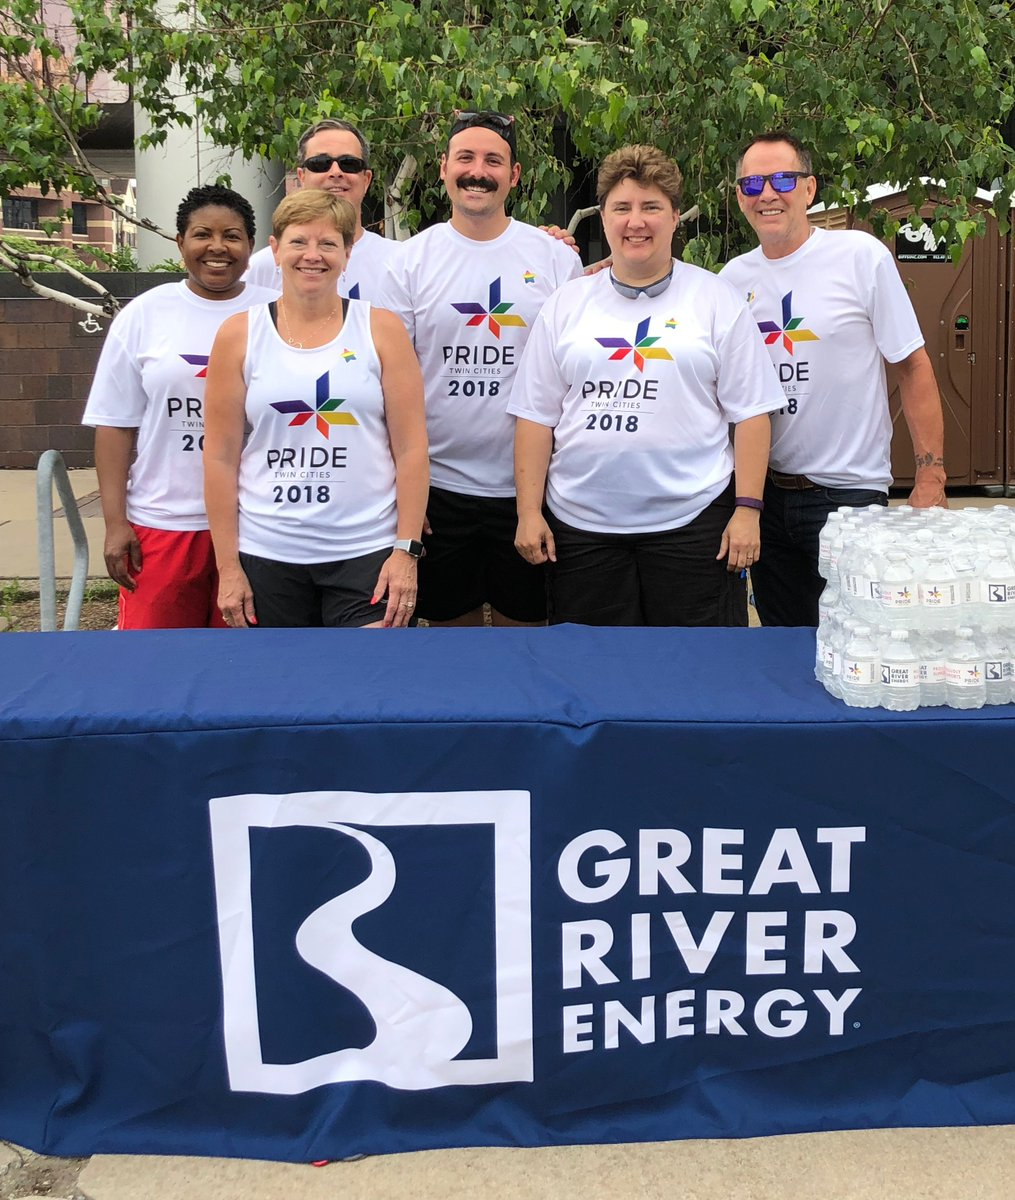 Great River Energy Picture